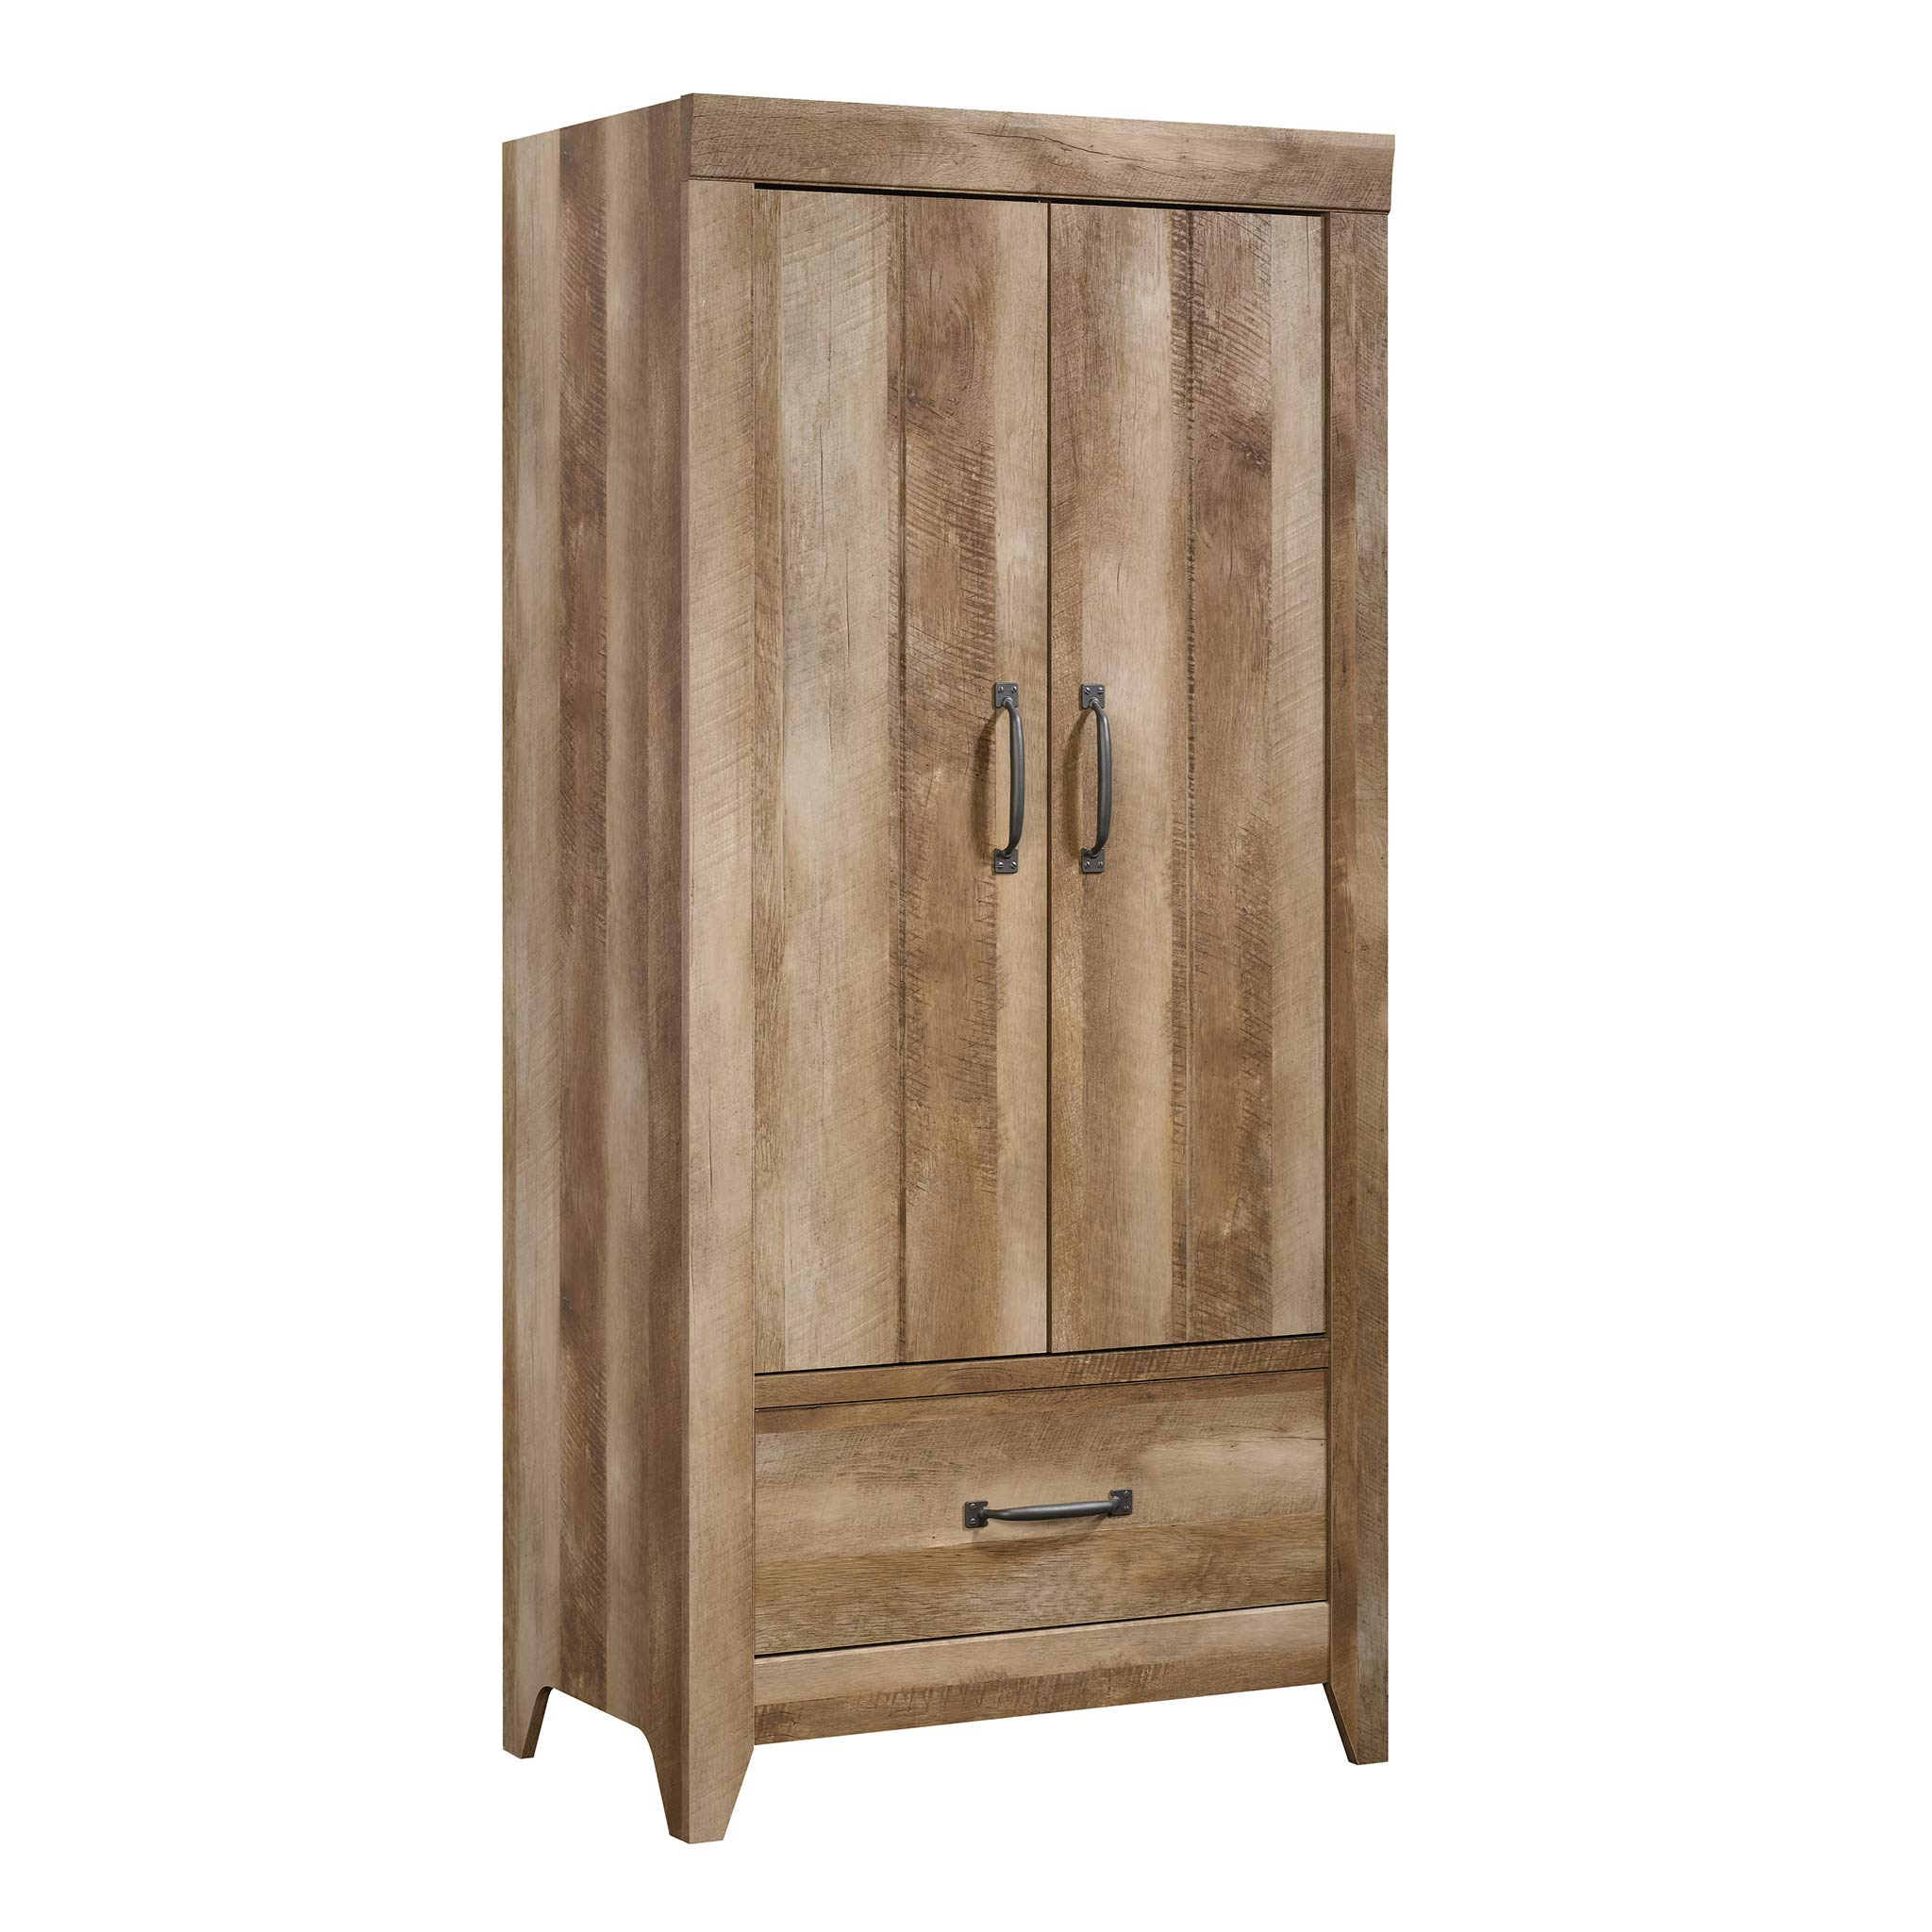 Sauder 424141 Adept Storage Wardrobe, Craftsman Oak Finish by Sauder